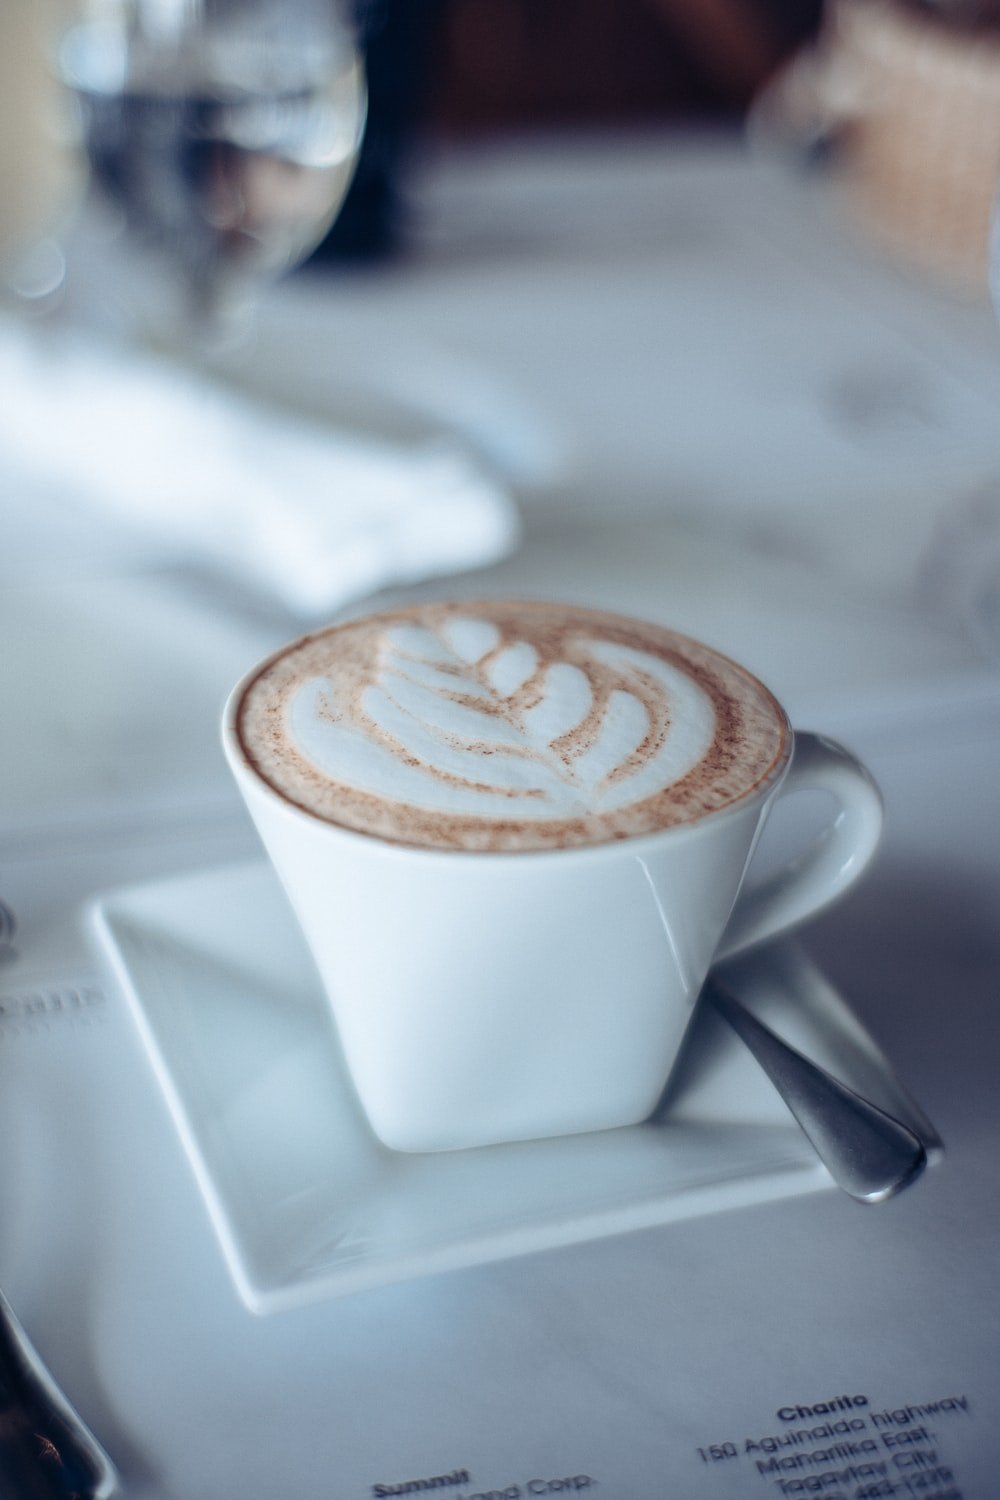 cappuccino on saucer